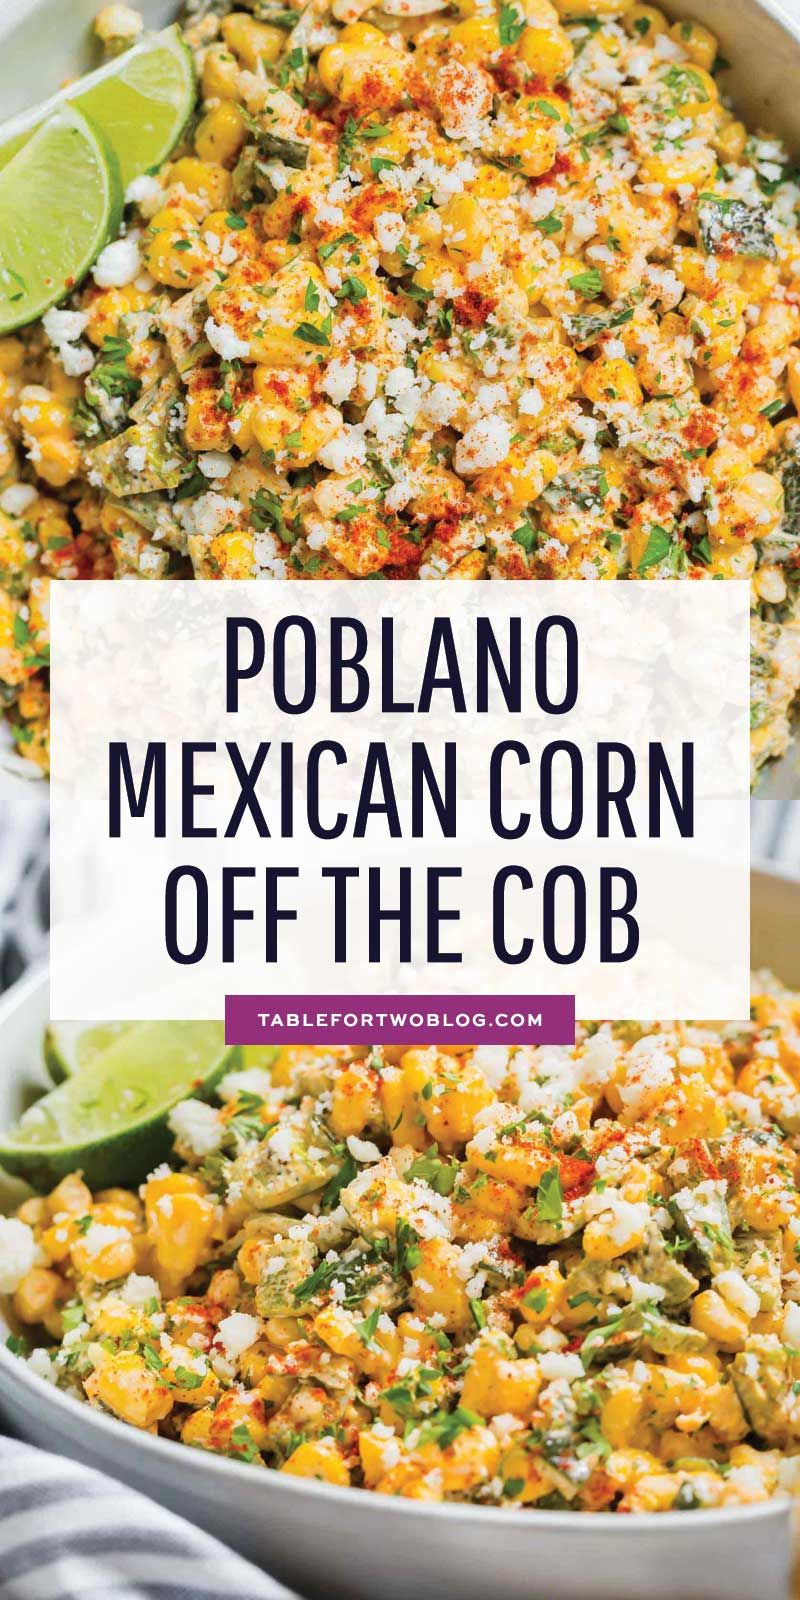 Poblano Mexican Street Corn off the Cob - Mexican Street Corn Recipe #mexicanstreetcorn